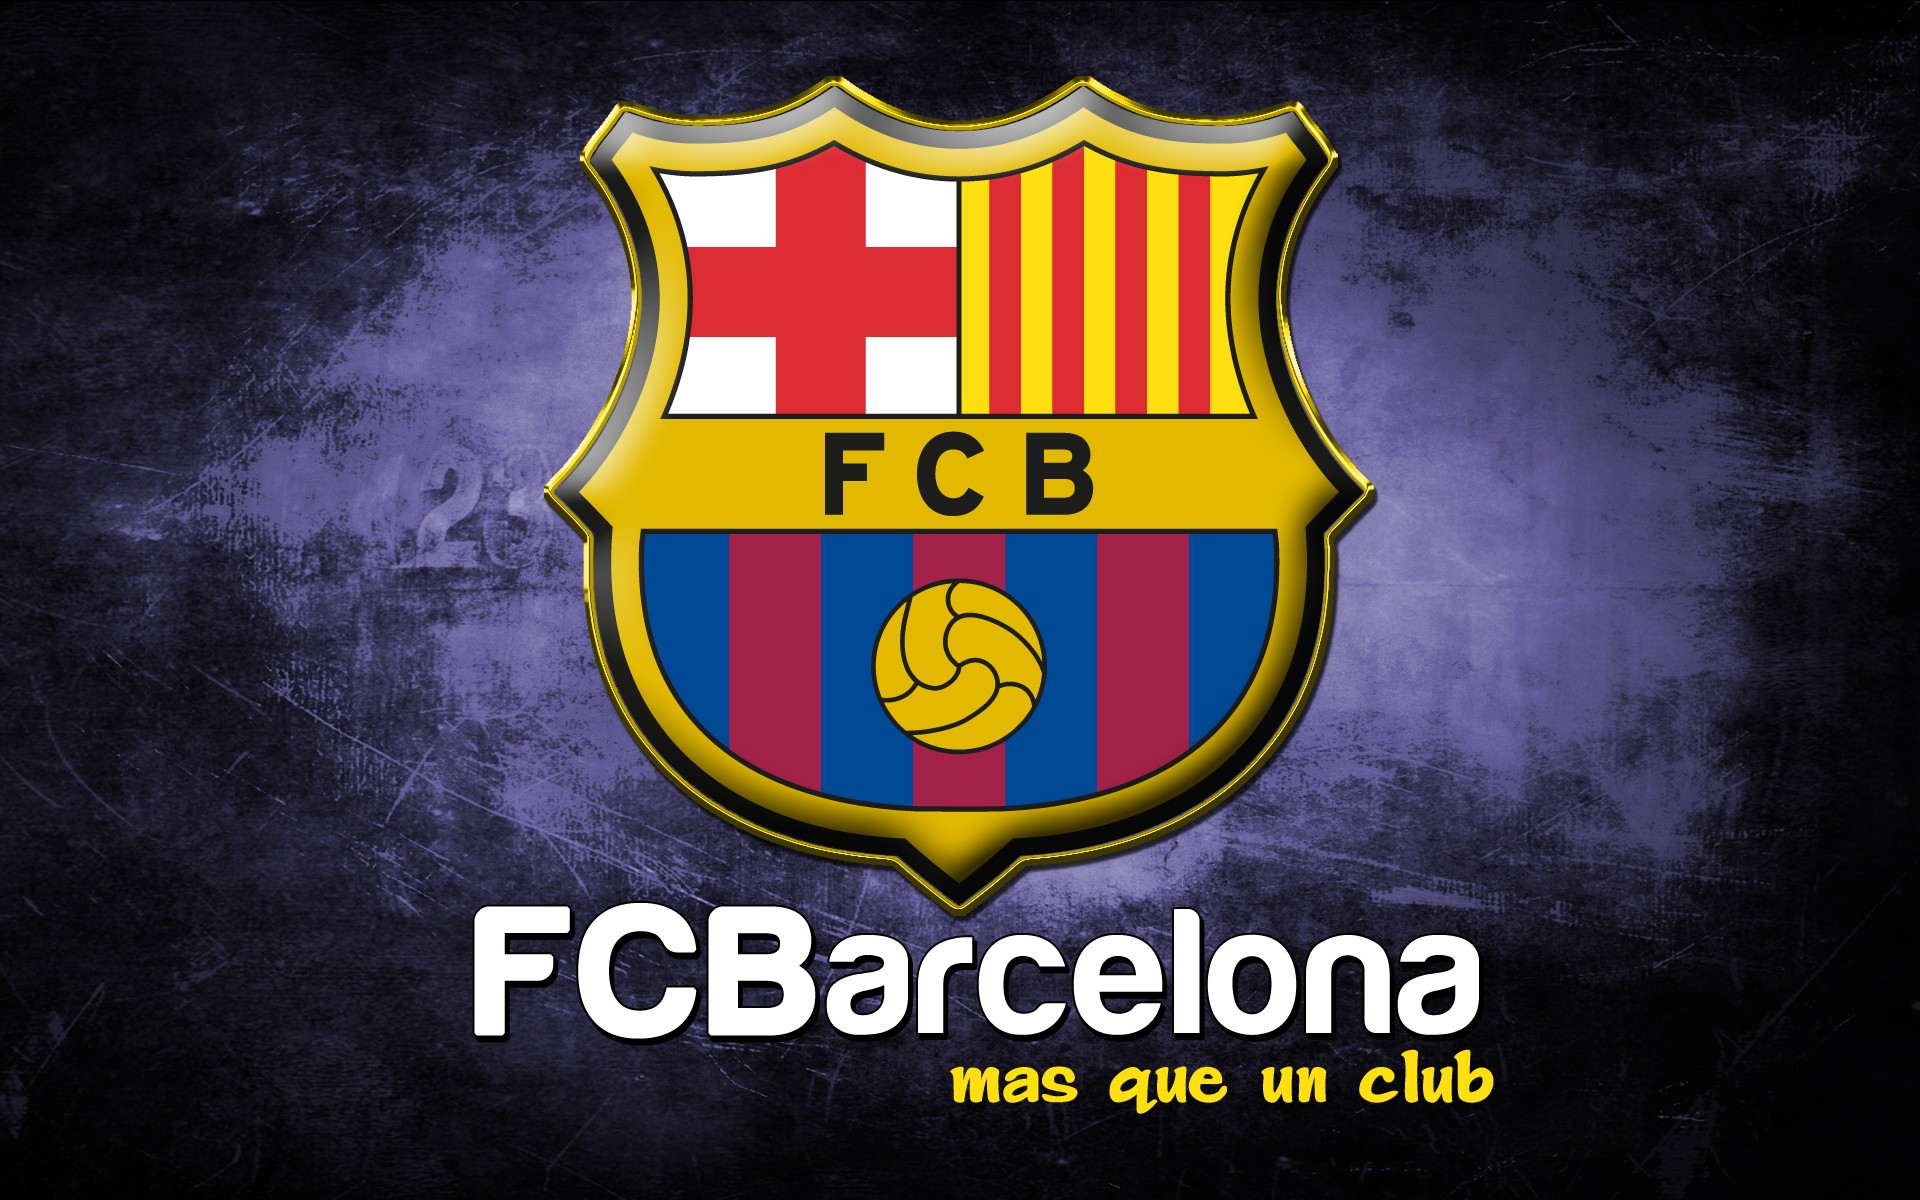 FC Barcelona hd 1920x1200   imagenes   wallpapers gratis   Deportes 1920x1200